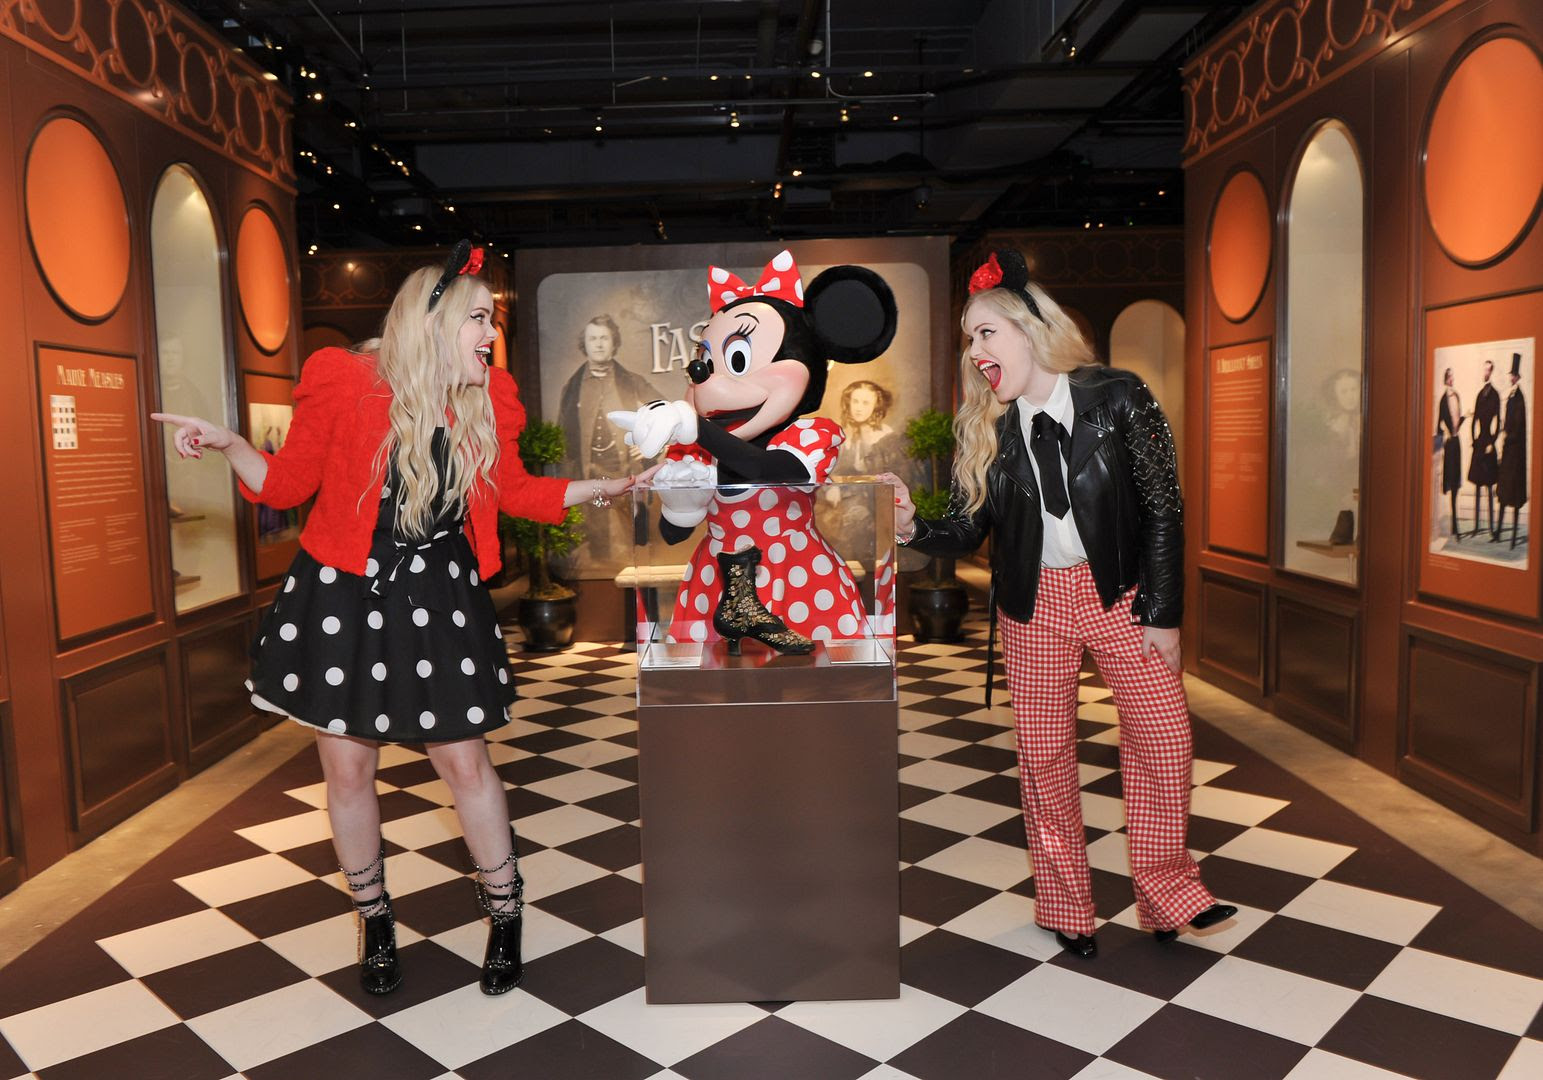 photo minniestyle-minniemouse-disney-beckermanblog-cailliandsambeckerman-disney-worldmastercardfashionweek-toronto-15_zps0499246a.jpg